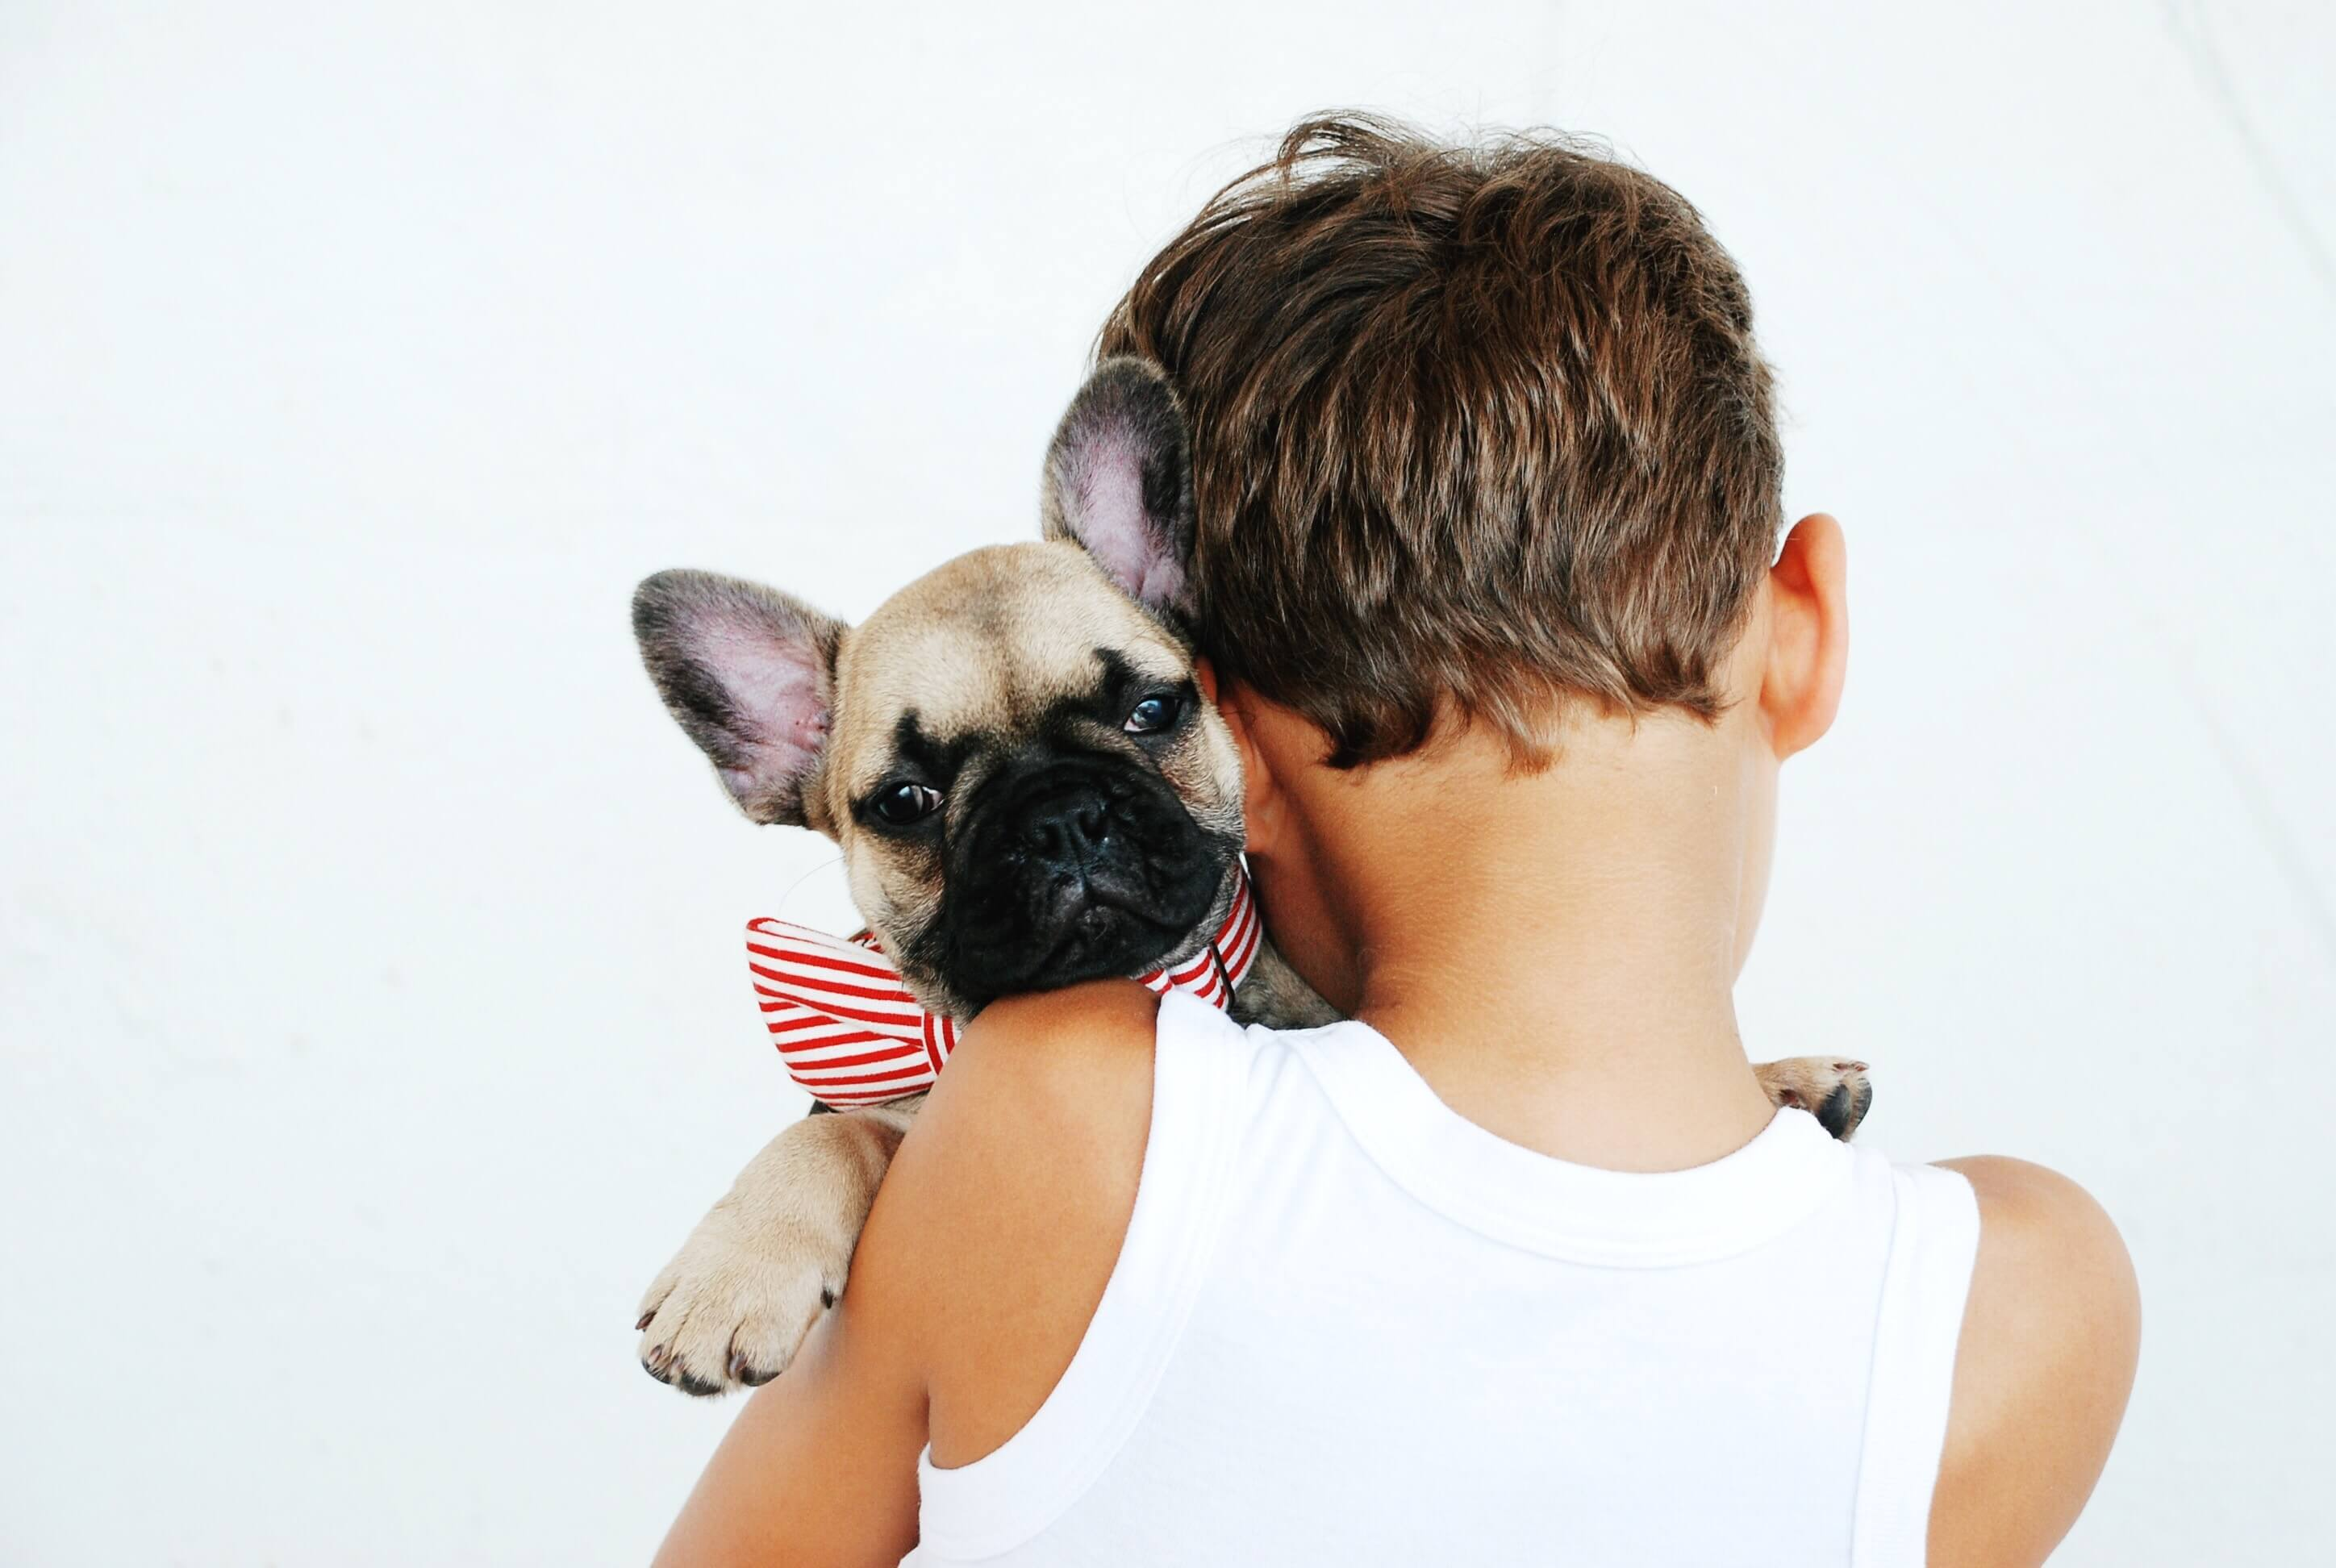 boy holding a French bulldog puppy